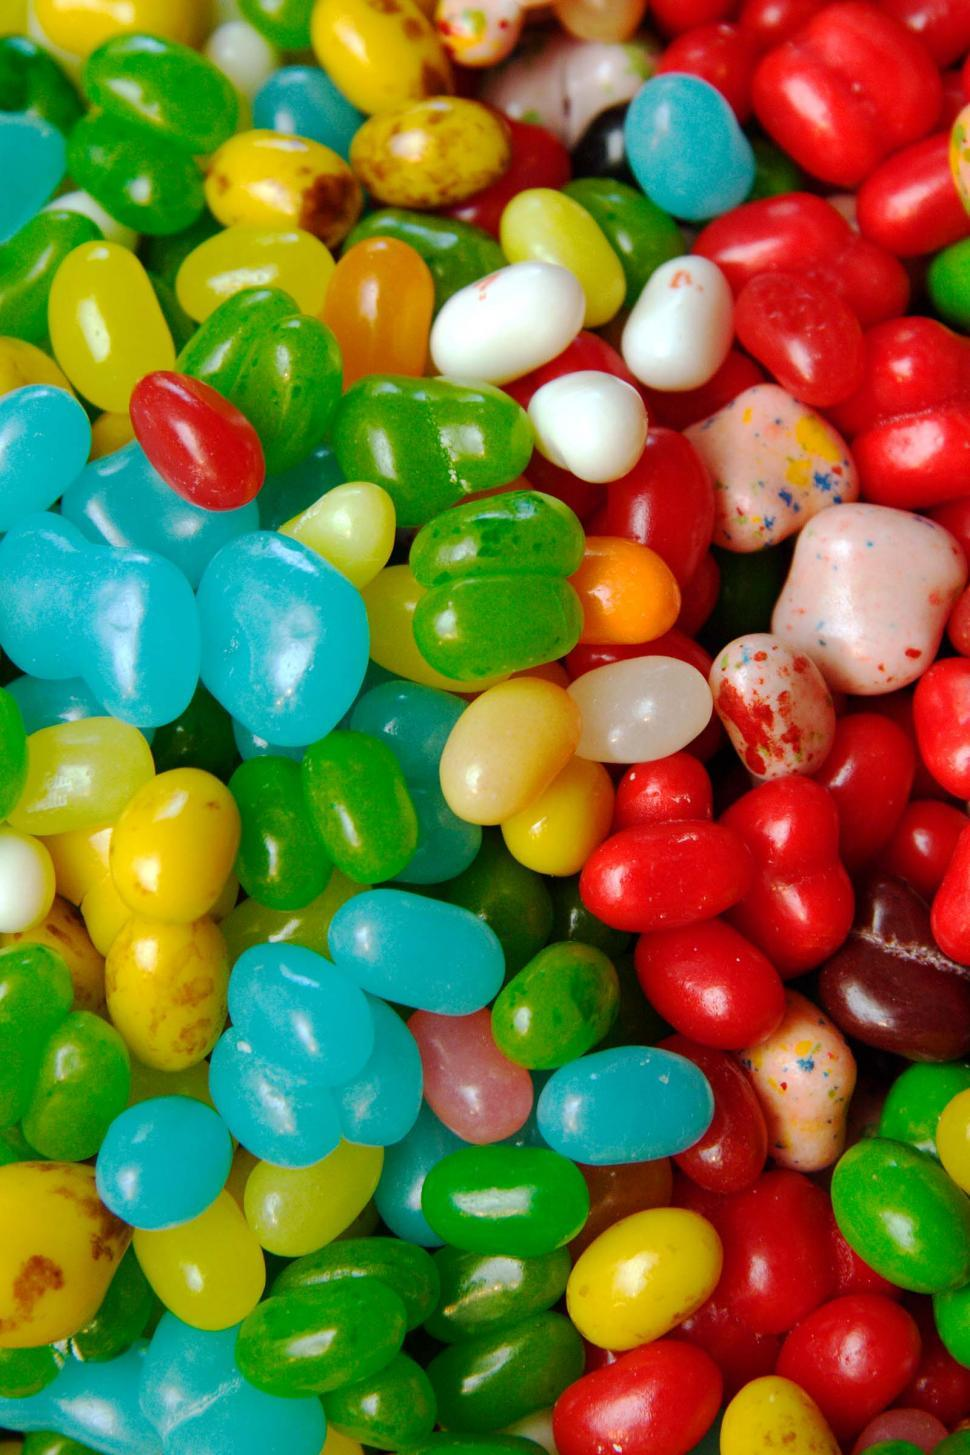 Free image of Many colored jelly beans make a background.